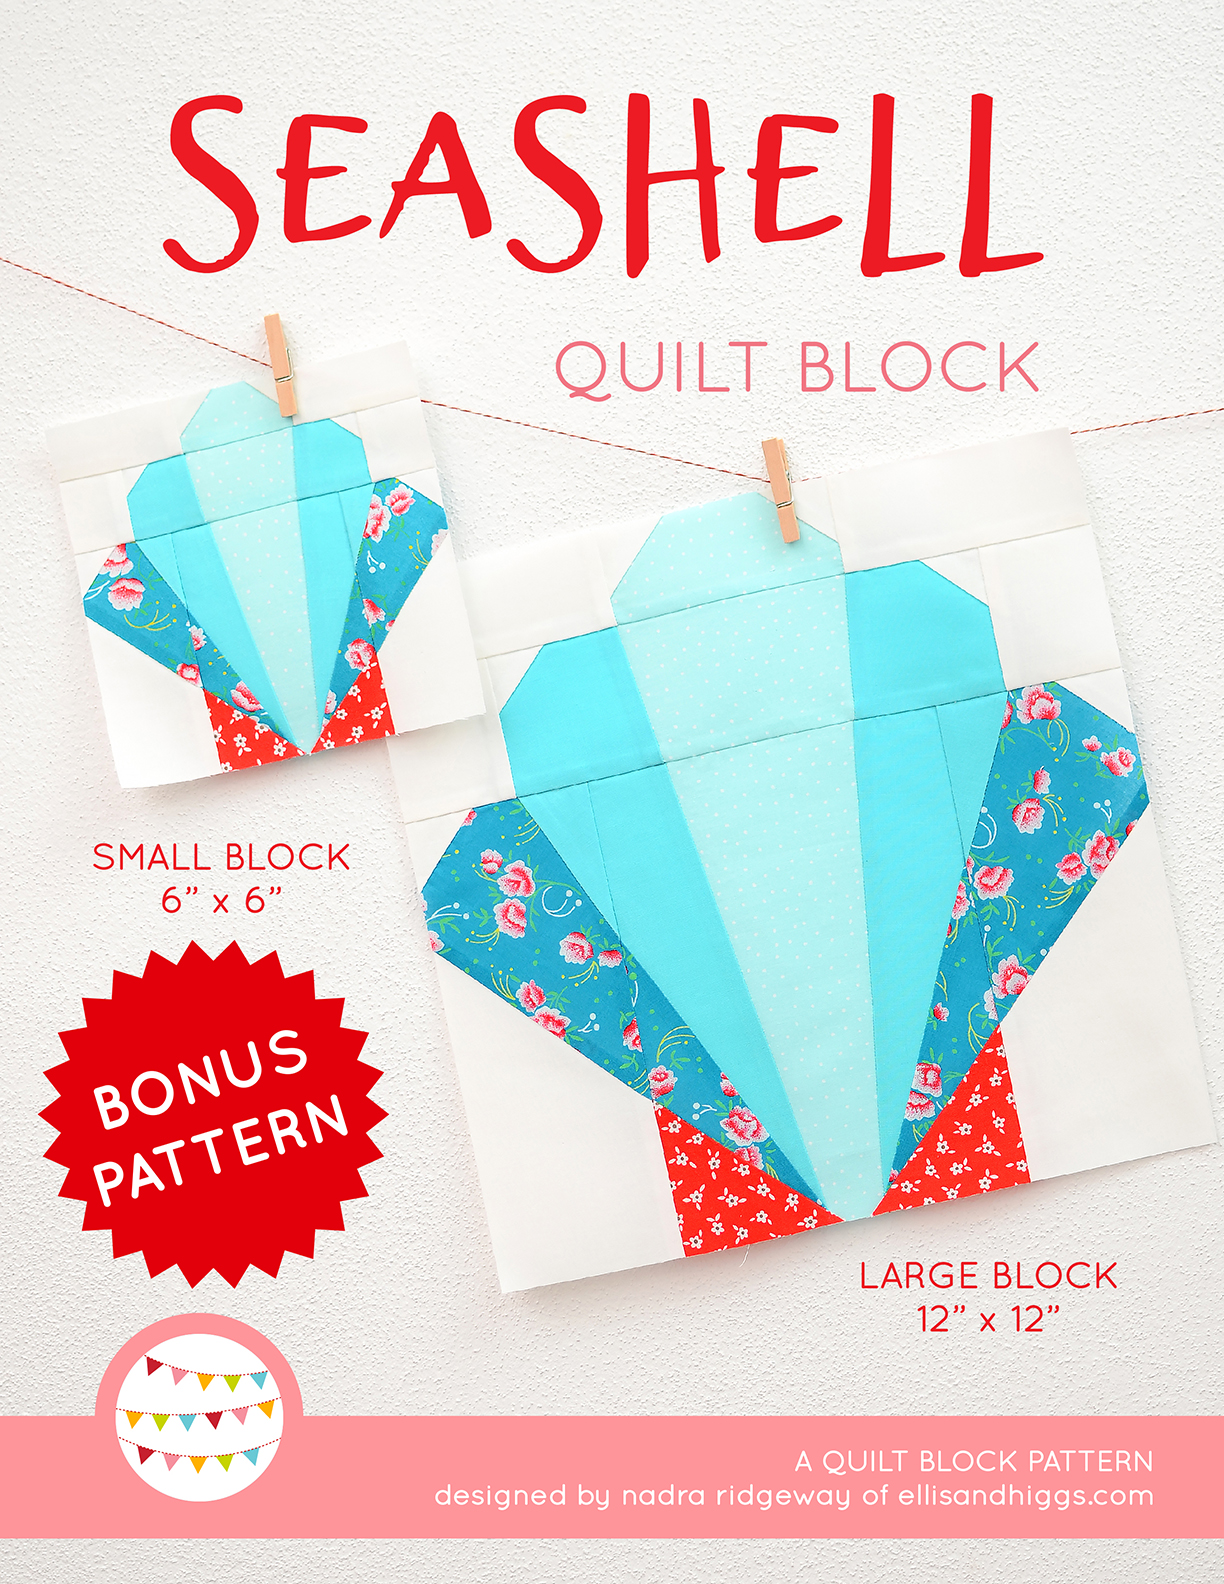 Seashell quilt pattern